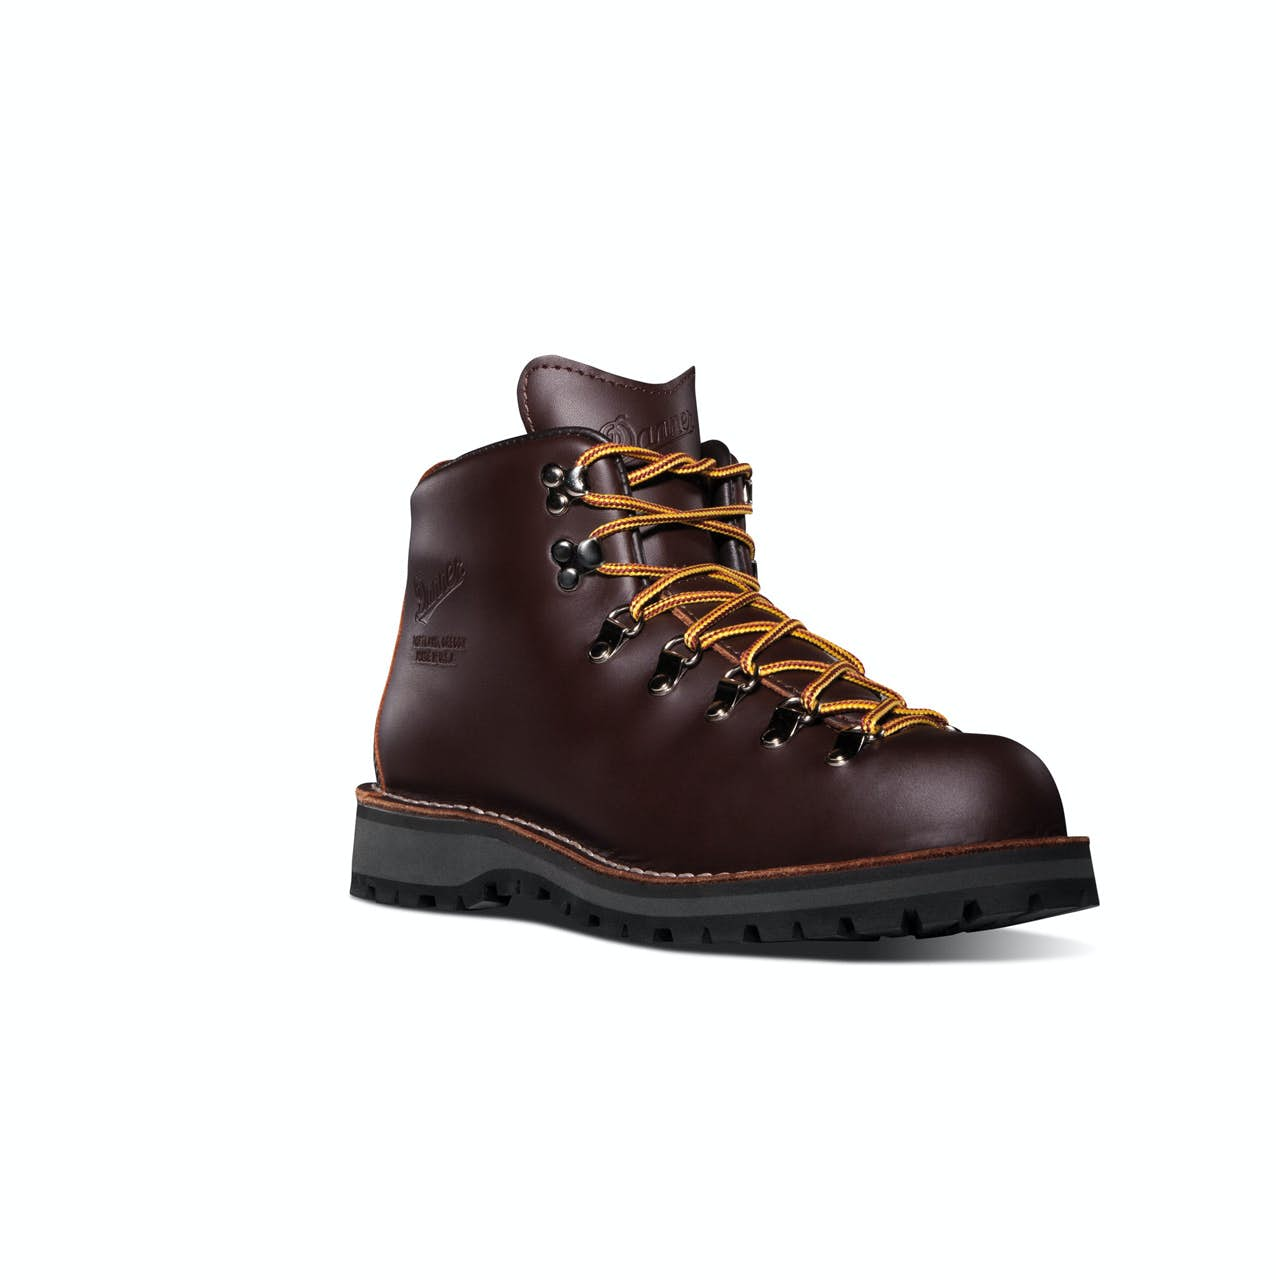 Mountain Light Backpacking Boots by Danner